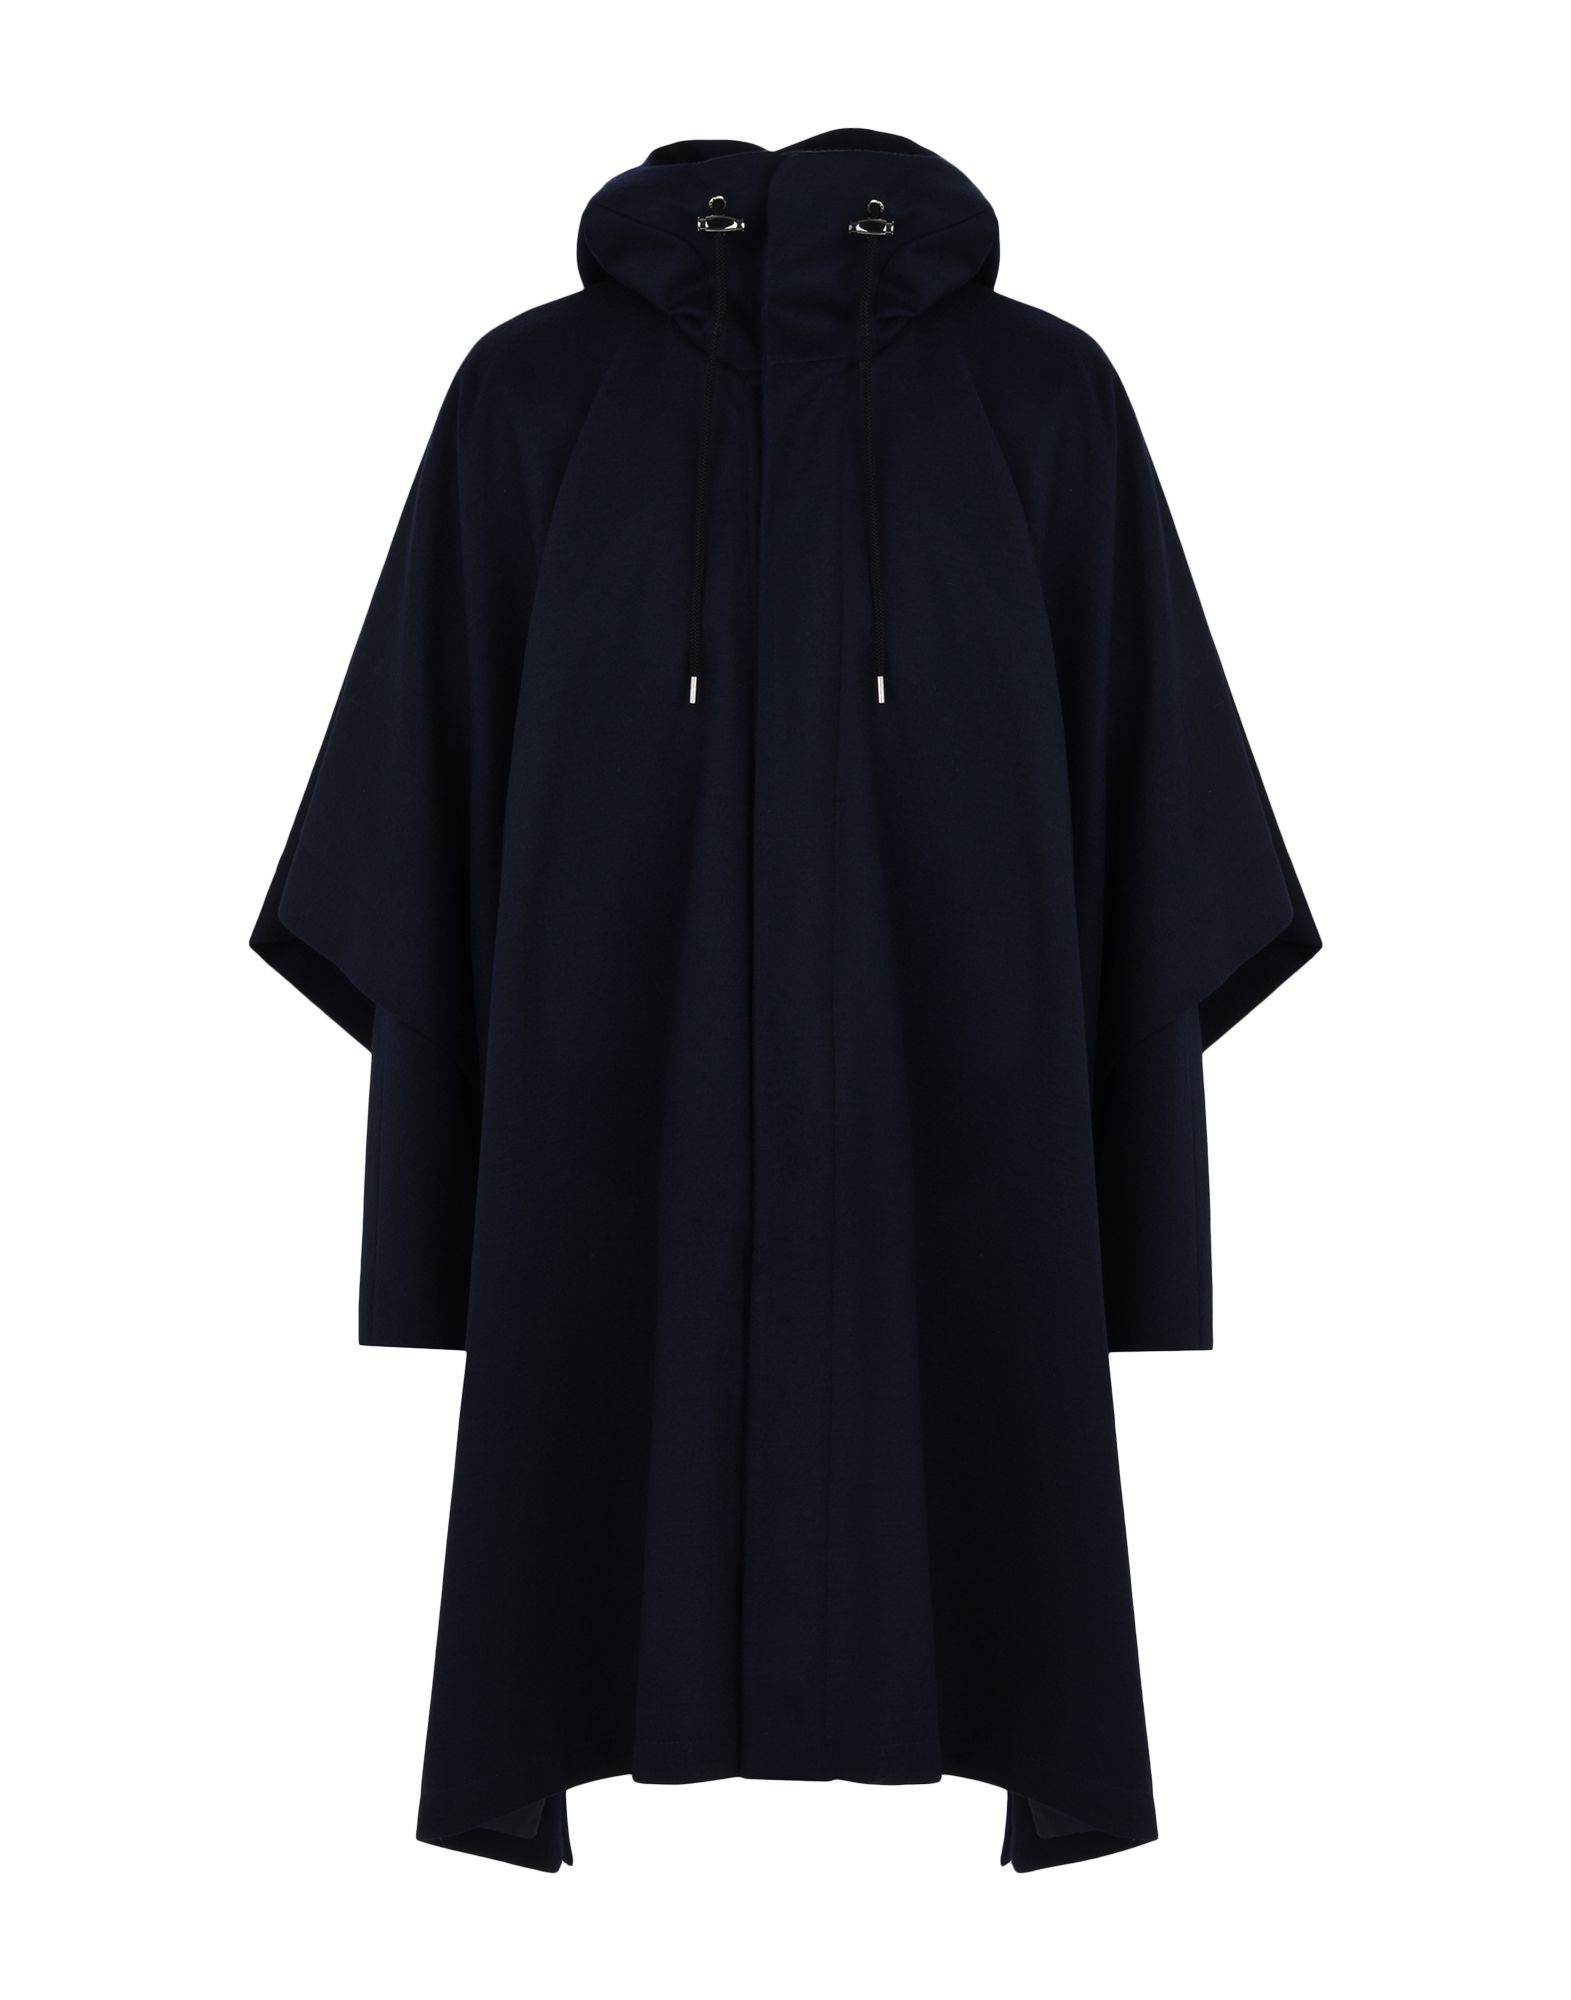 GIORGIO ARMANI Capes & ponchos. flannel, no appliqués, basic solid color, single-breasted, snap button fastening, hooded collar, multipockets, long sleeves, fully lined, cloak model, large sized. 77% Wool, 23% Polyester